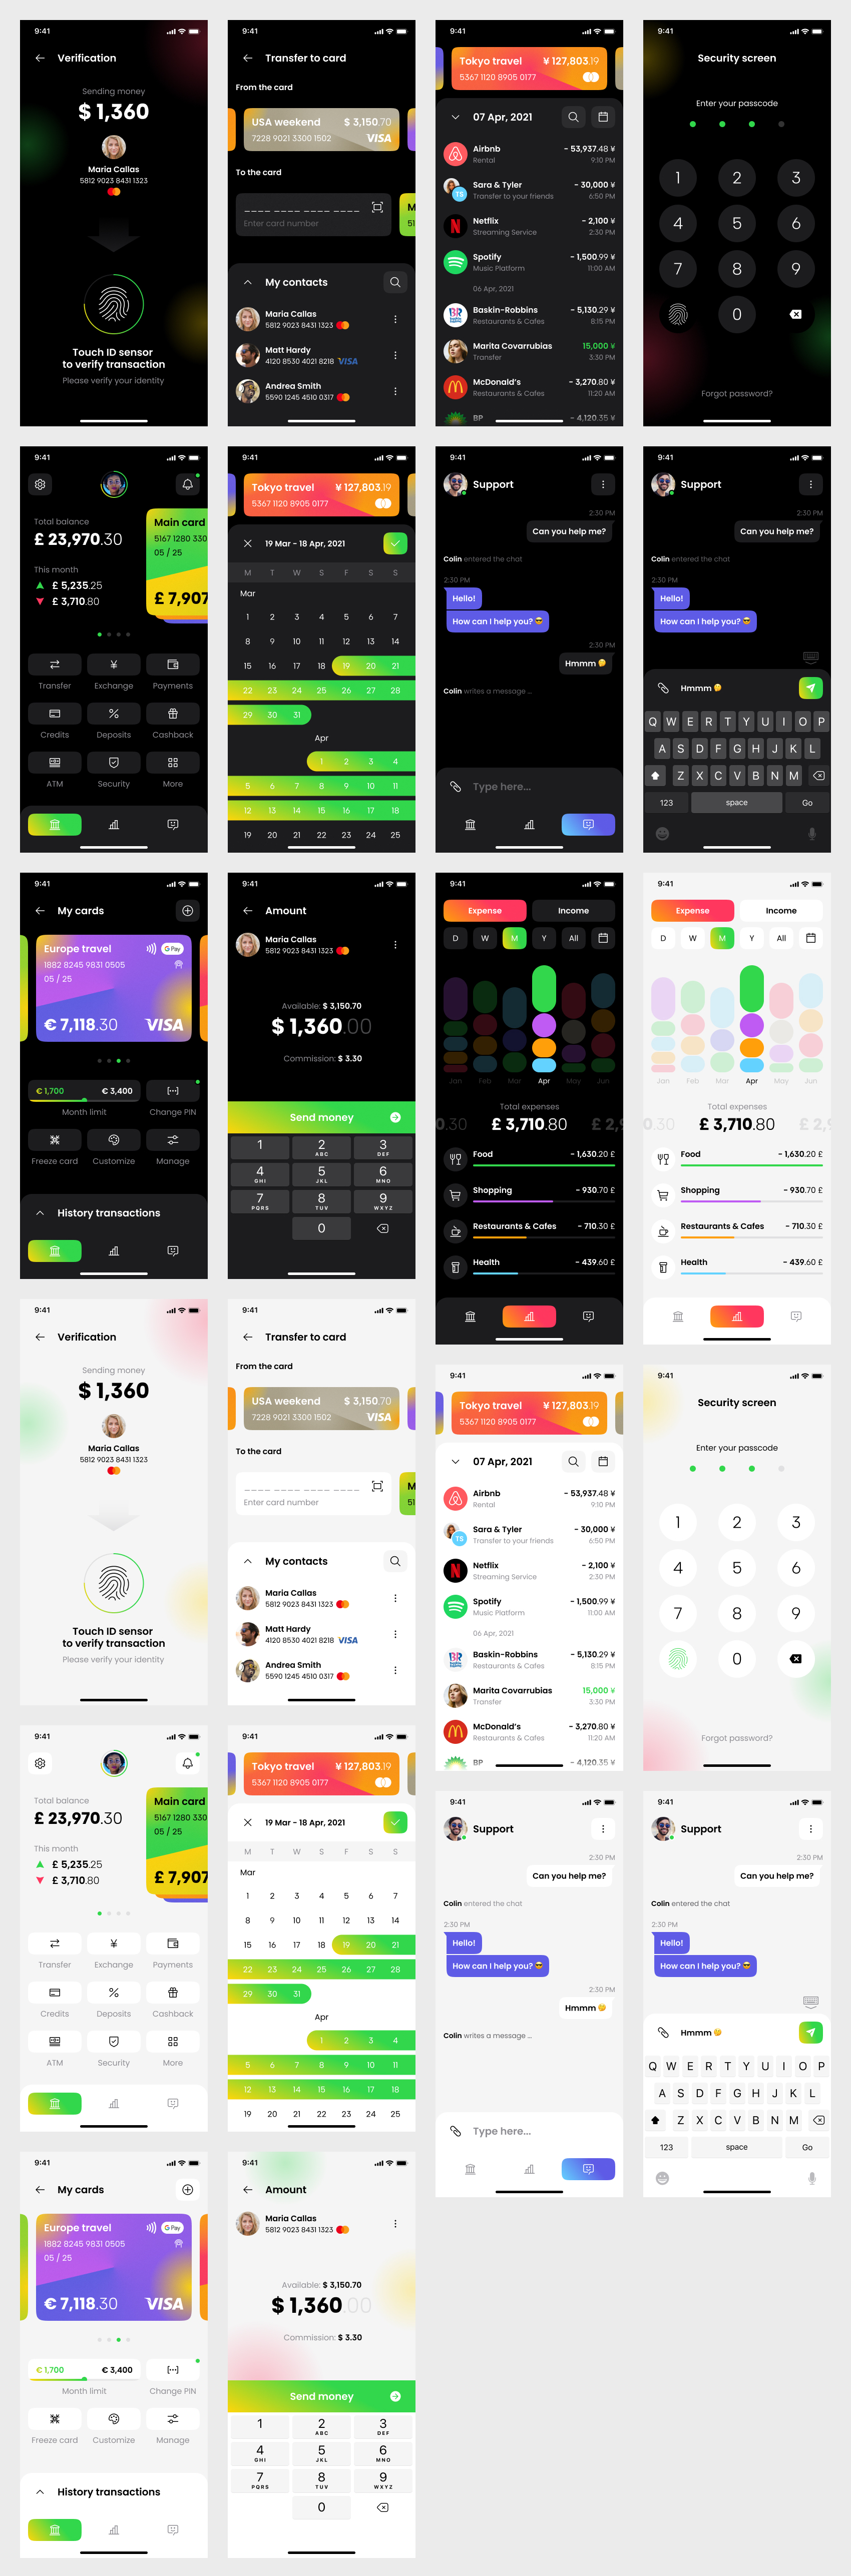 Banking App Free UI Kit for Figma - Clean and clear UI Kit with necessary stuff to create design projects. It features 22 mobile screen pages to get you started on your projects.